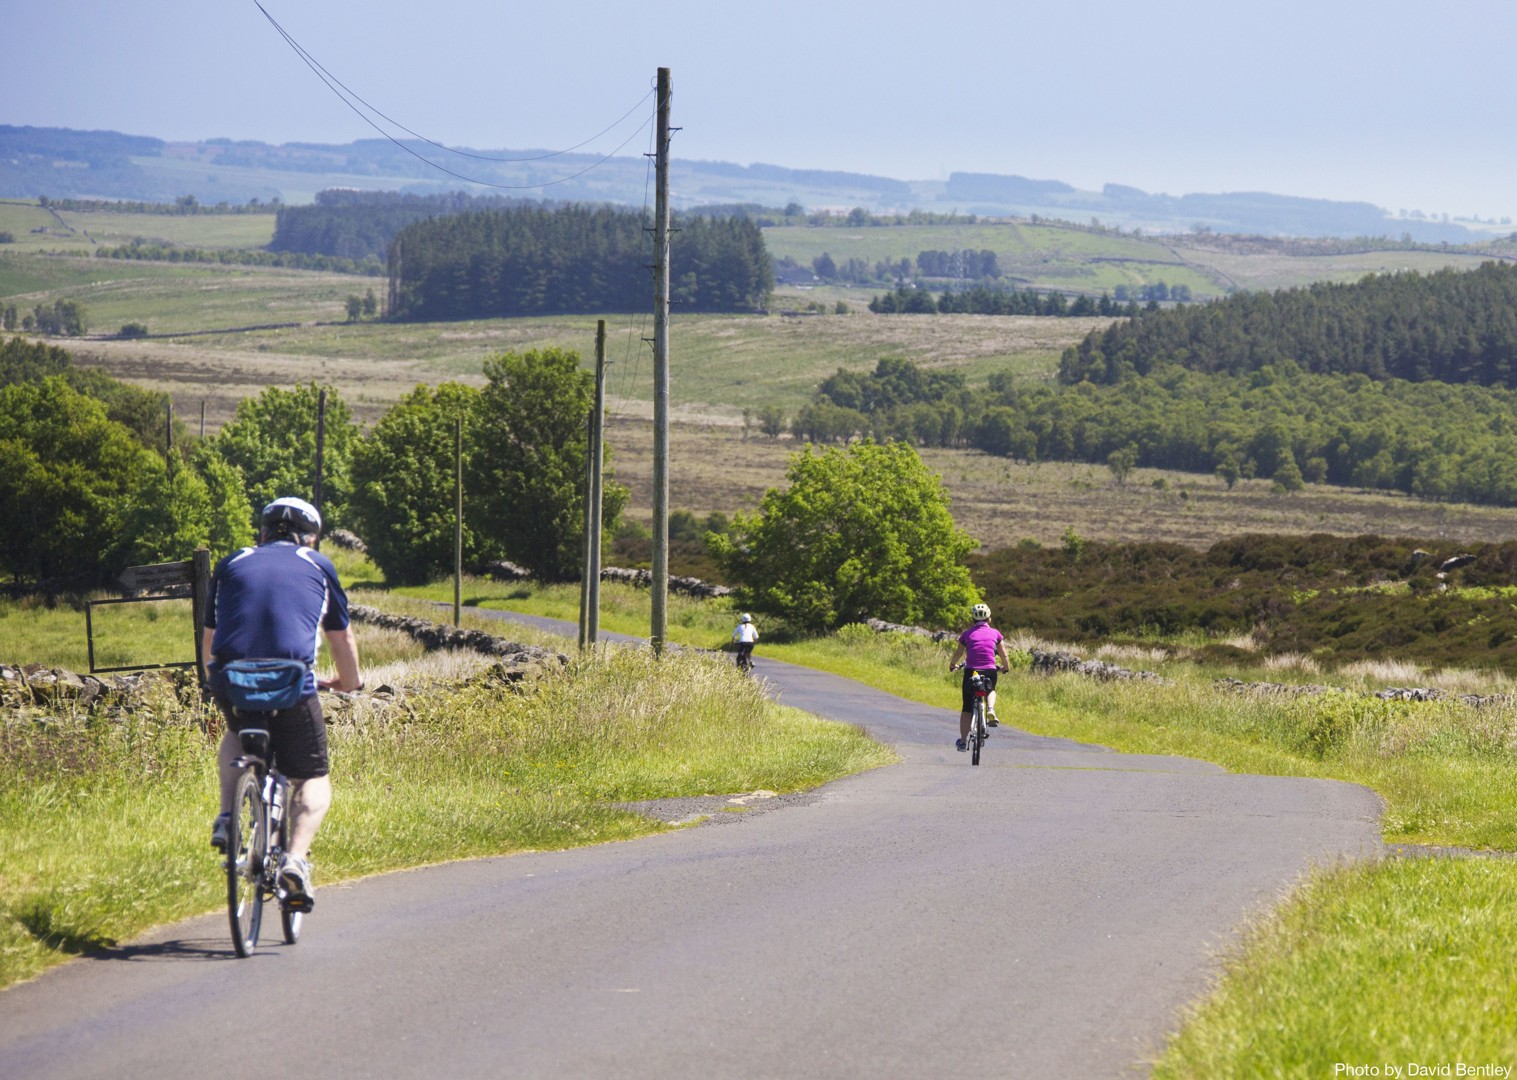 Cycle-Hadrians-Wall-UK-Hadrians-Cycleway-Self-Guided-Leisure-Cycling-Holiday.jpg - UK - Hadrian's Cycleway - 3 Days Cycling - Self-Guided Leisure Cycling Holiday - Leisure Cycling